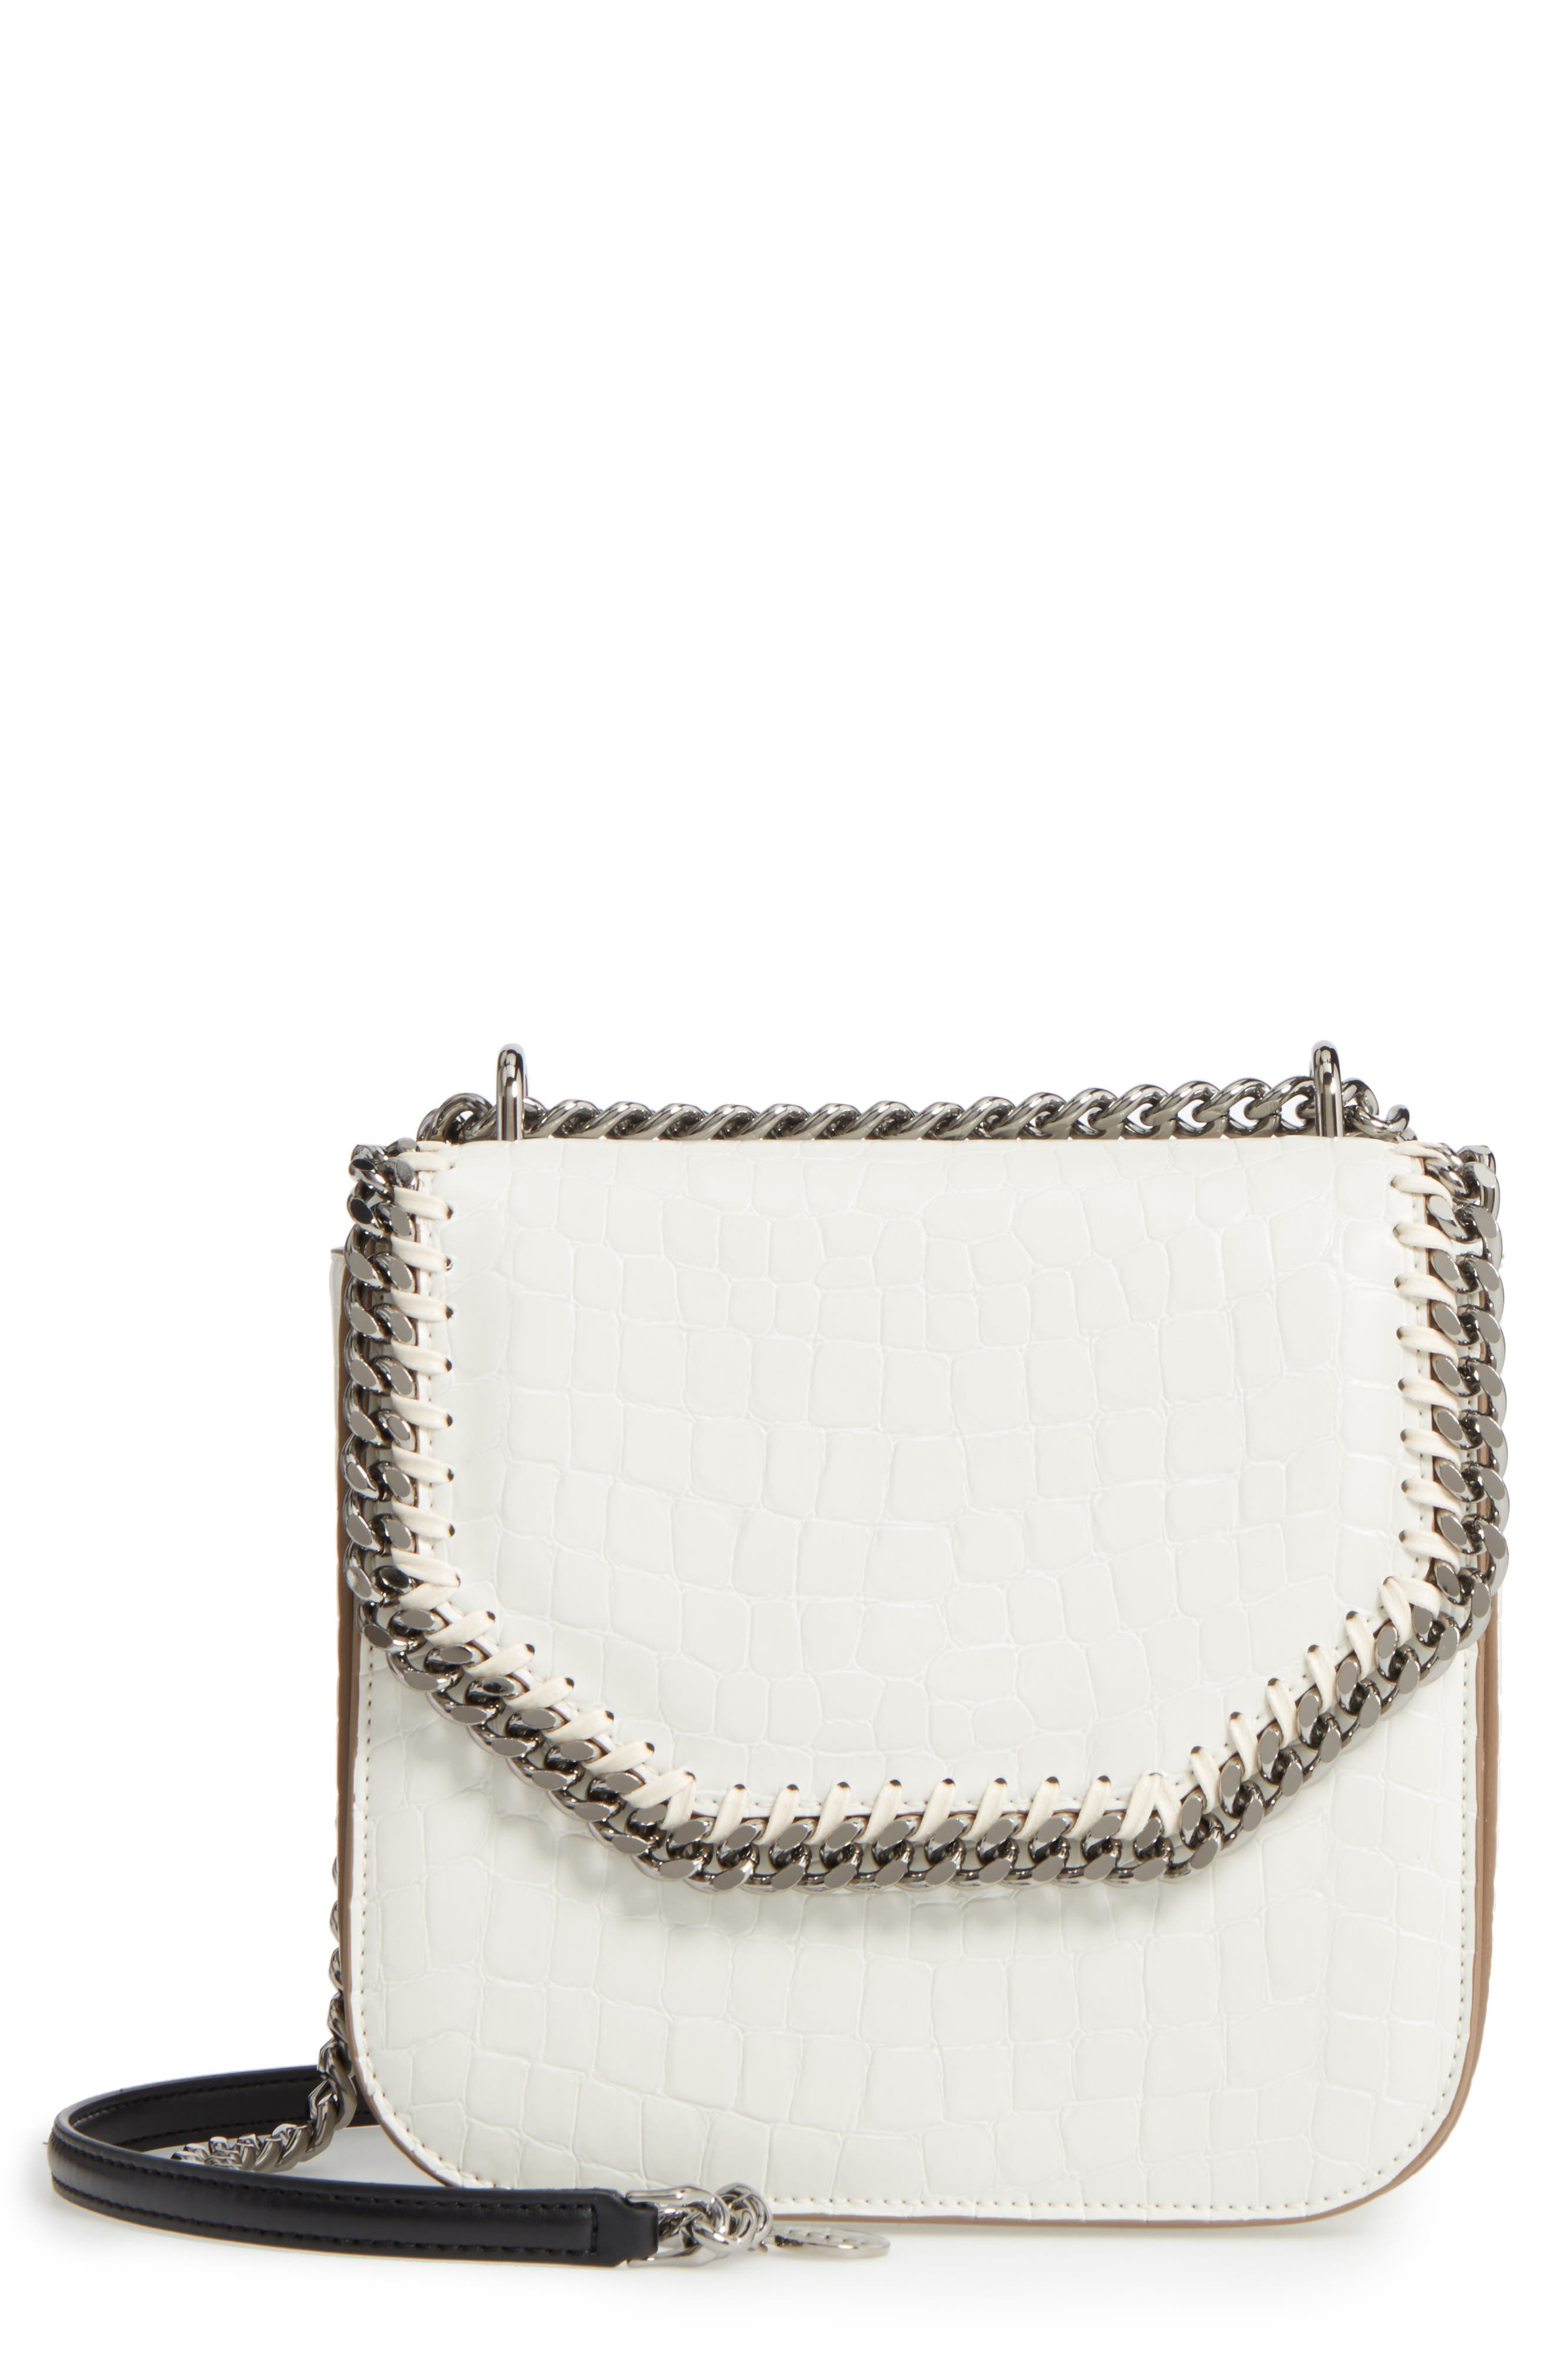 Alternate Image 1 Selected - Stella McCartney Medium Falabella Box Croc-Embossed Faux Leather Shoulder Bag